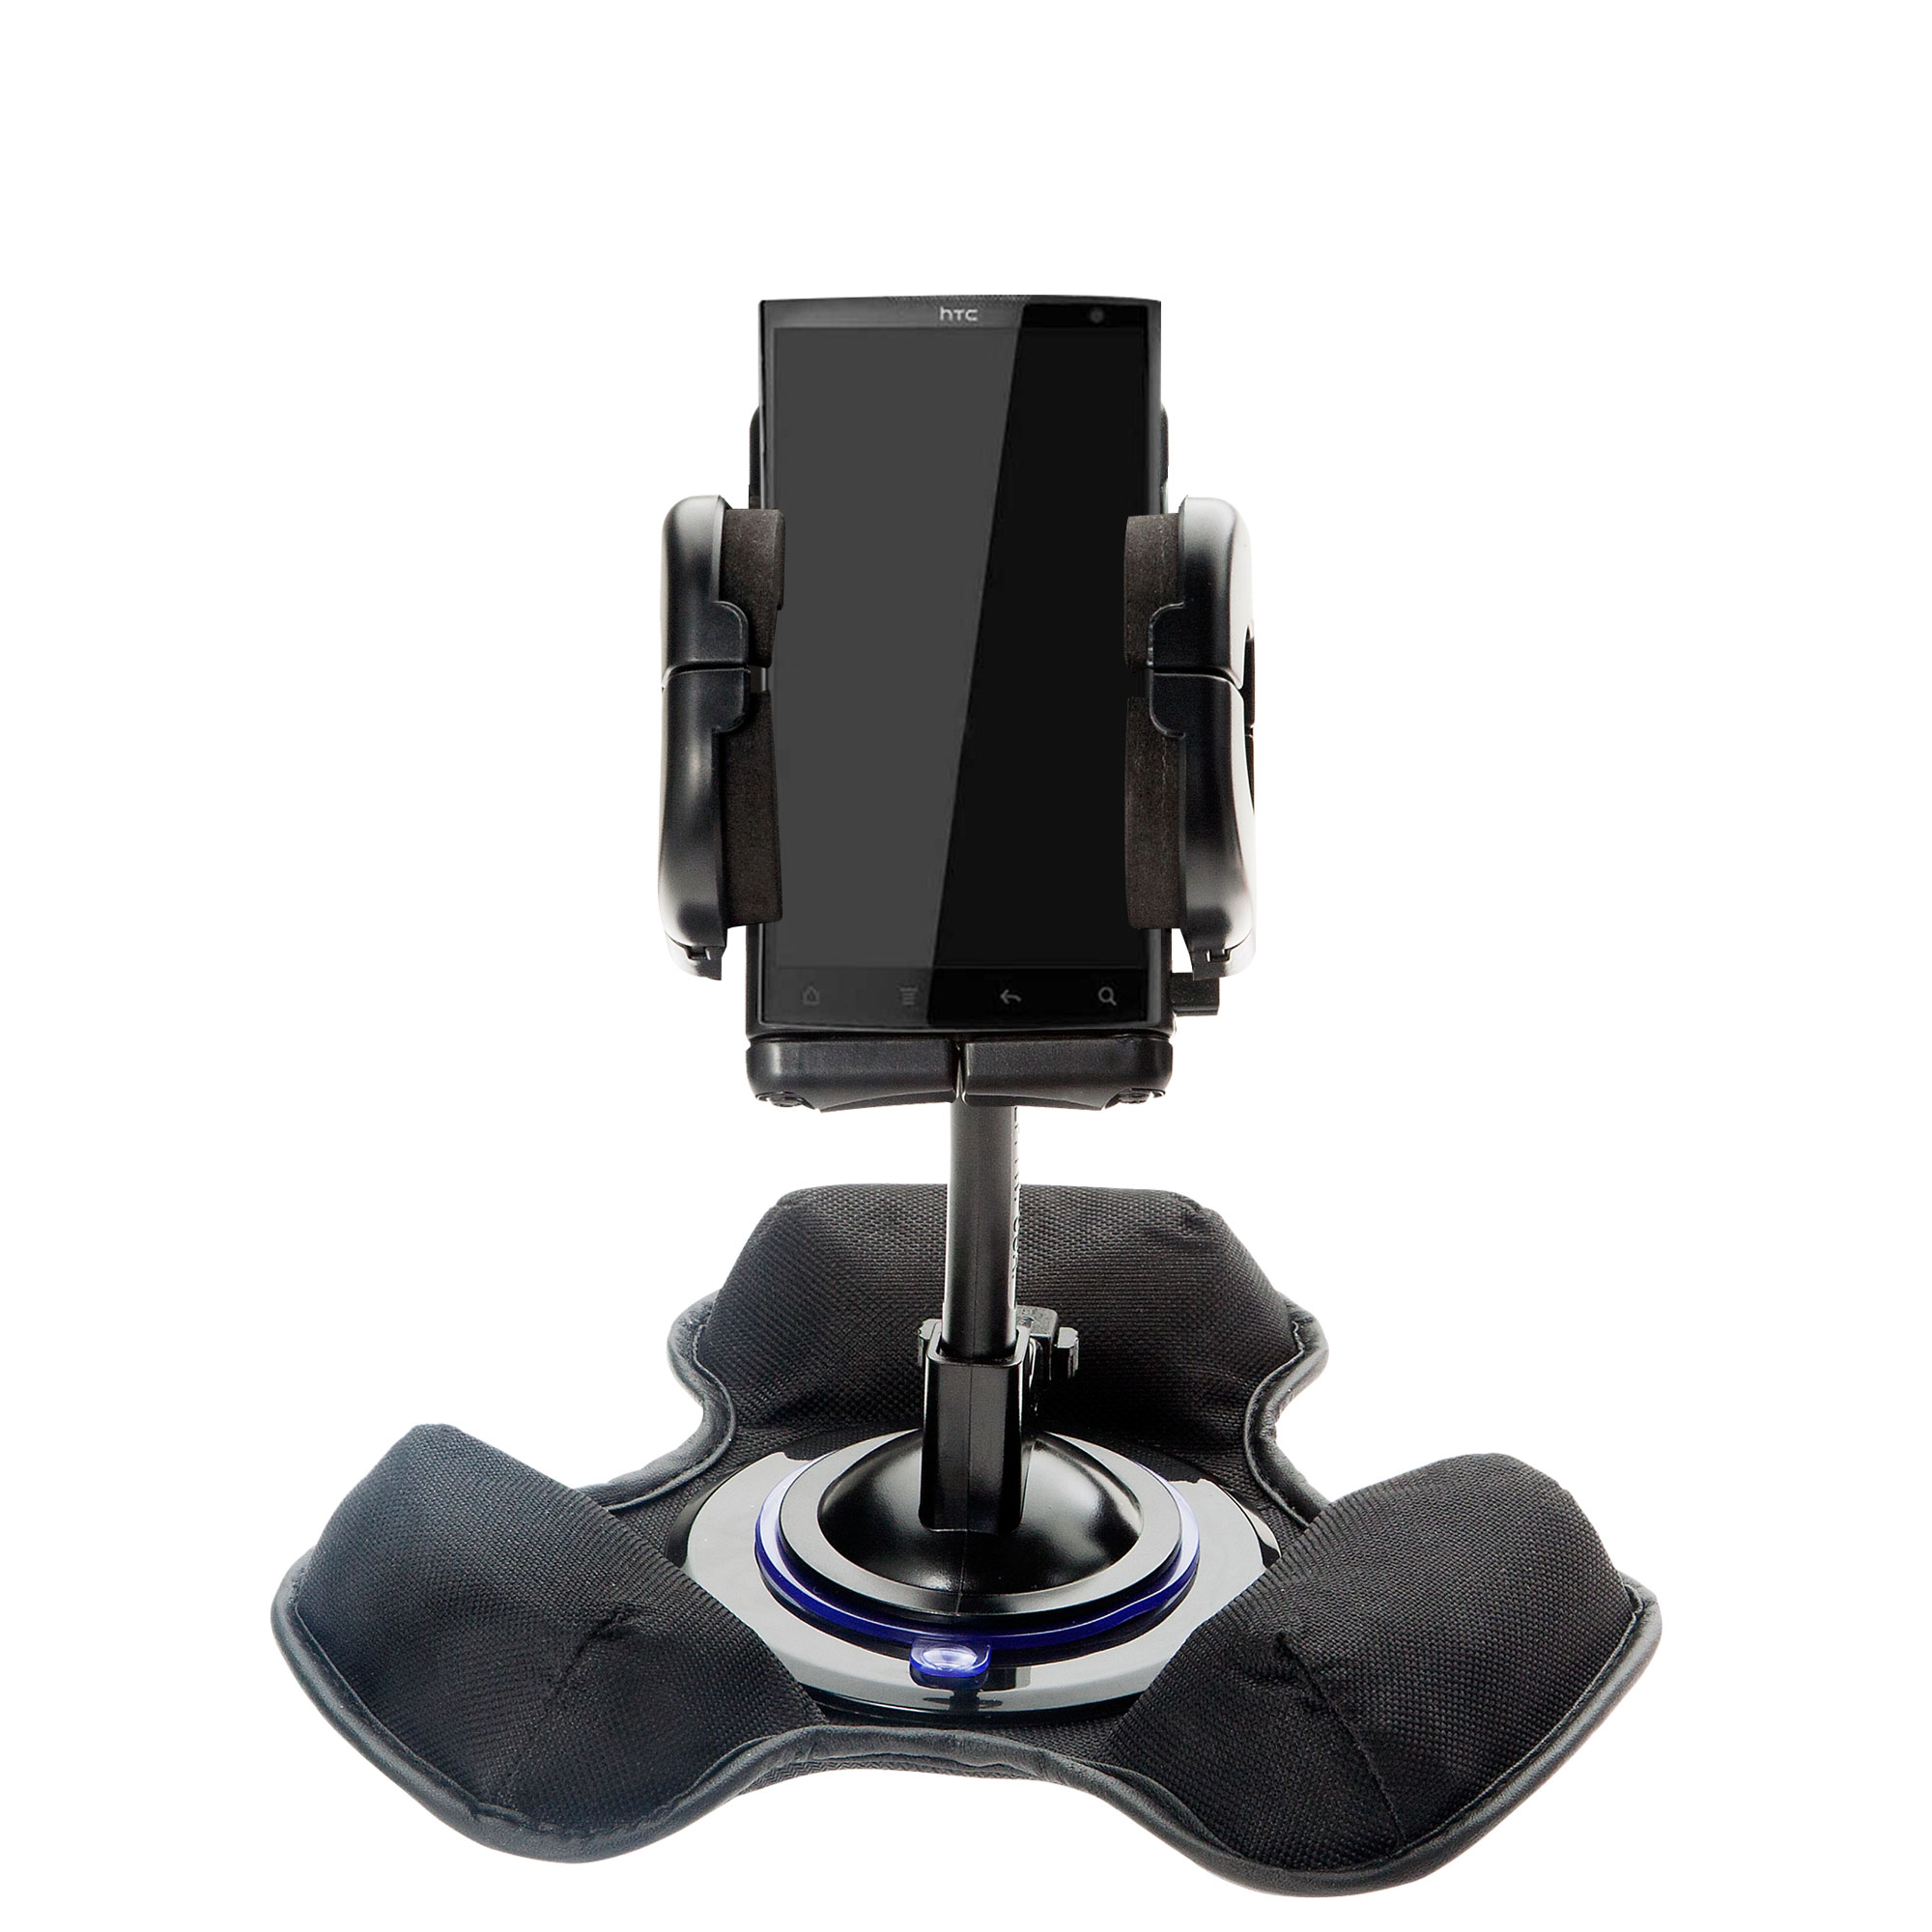 Car / Truck Vehicle Holder Mounting System for HTC Zeta Includes Unique Flexible Windshield Suction and Universal Dashboard Mount Options